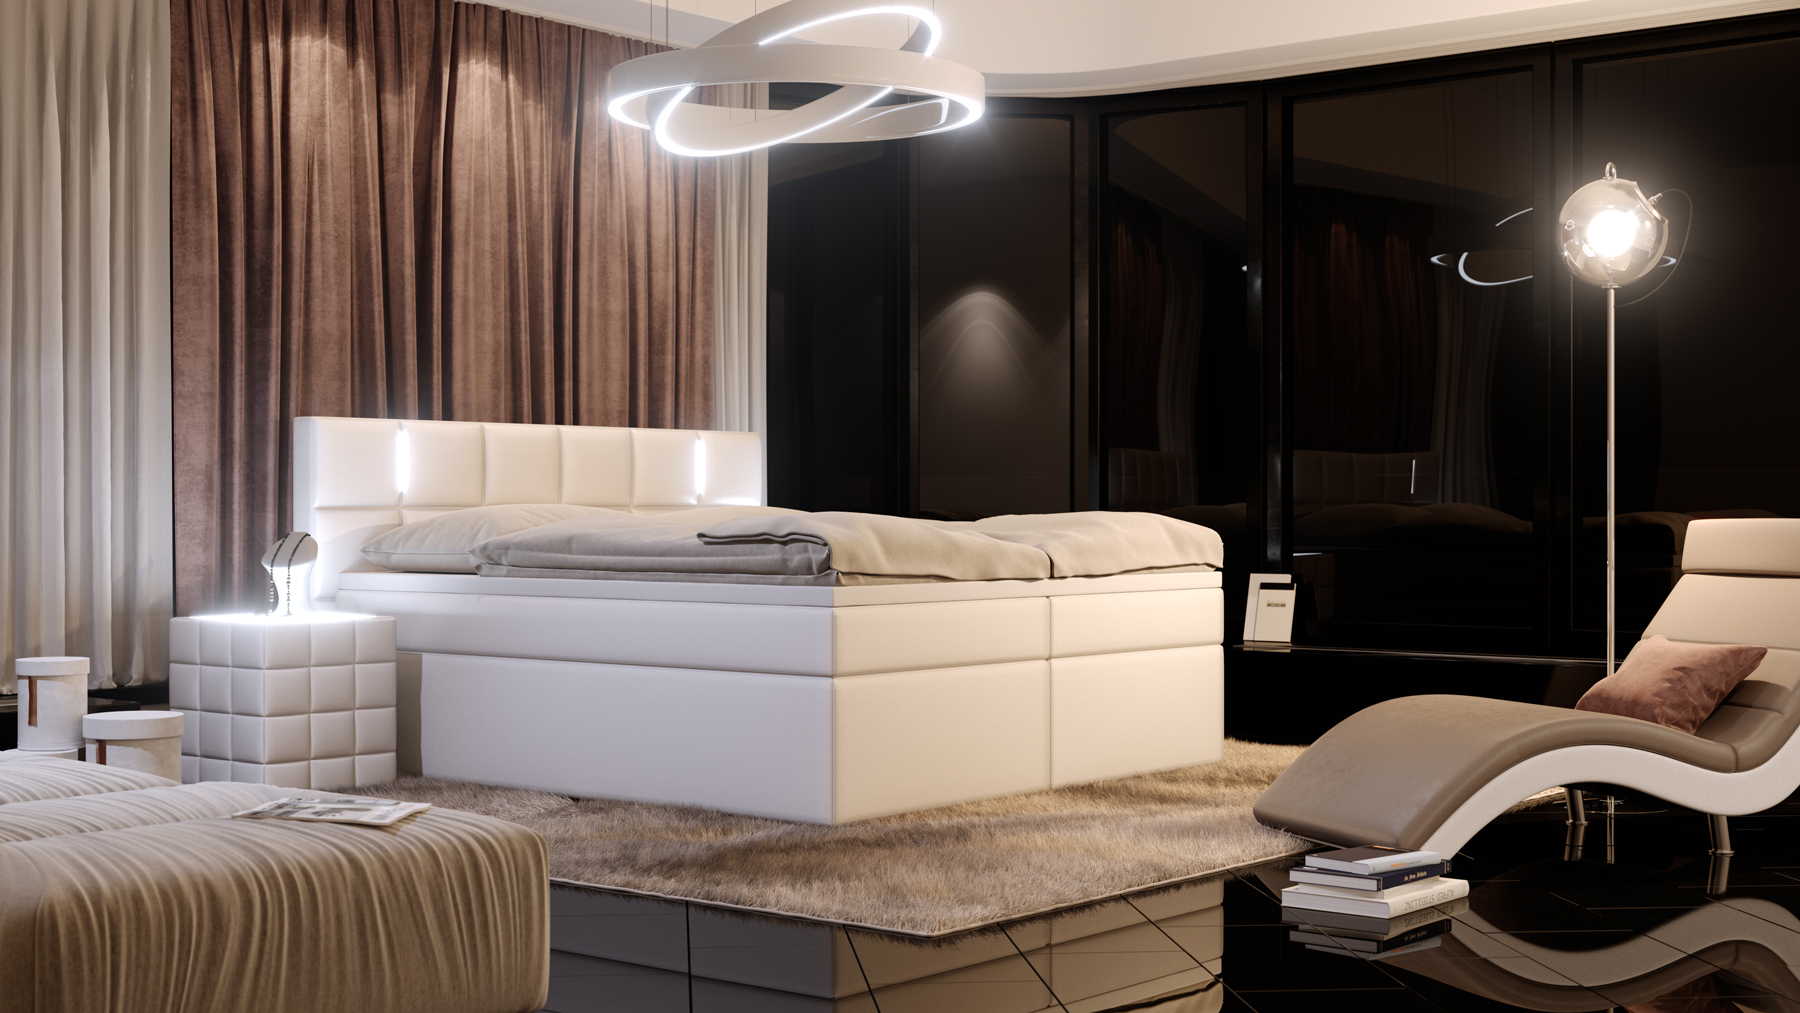 sam boxspringbett mit led hotelbett 180 x 200 cm wei. Black Bedroom Furniture Sets. Home Design Ideas